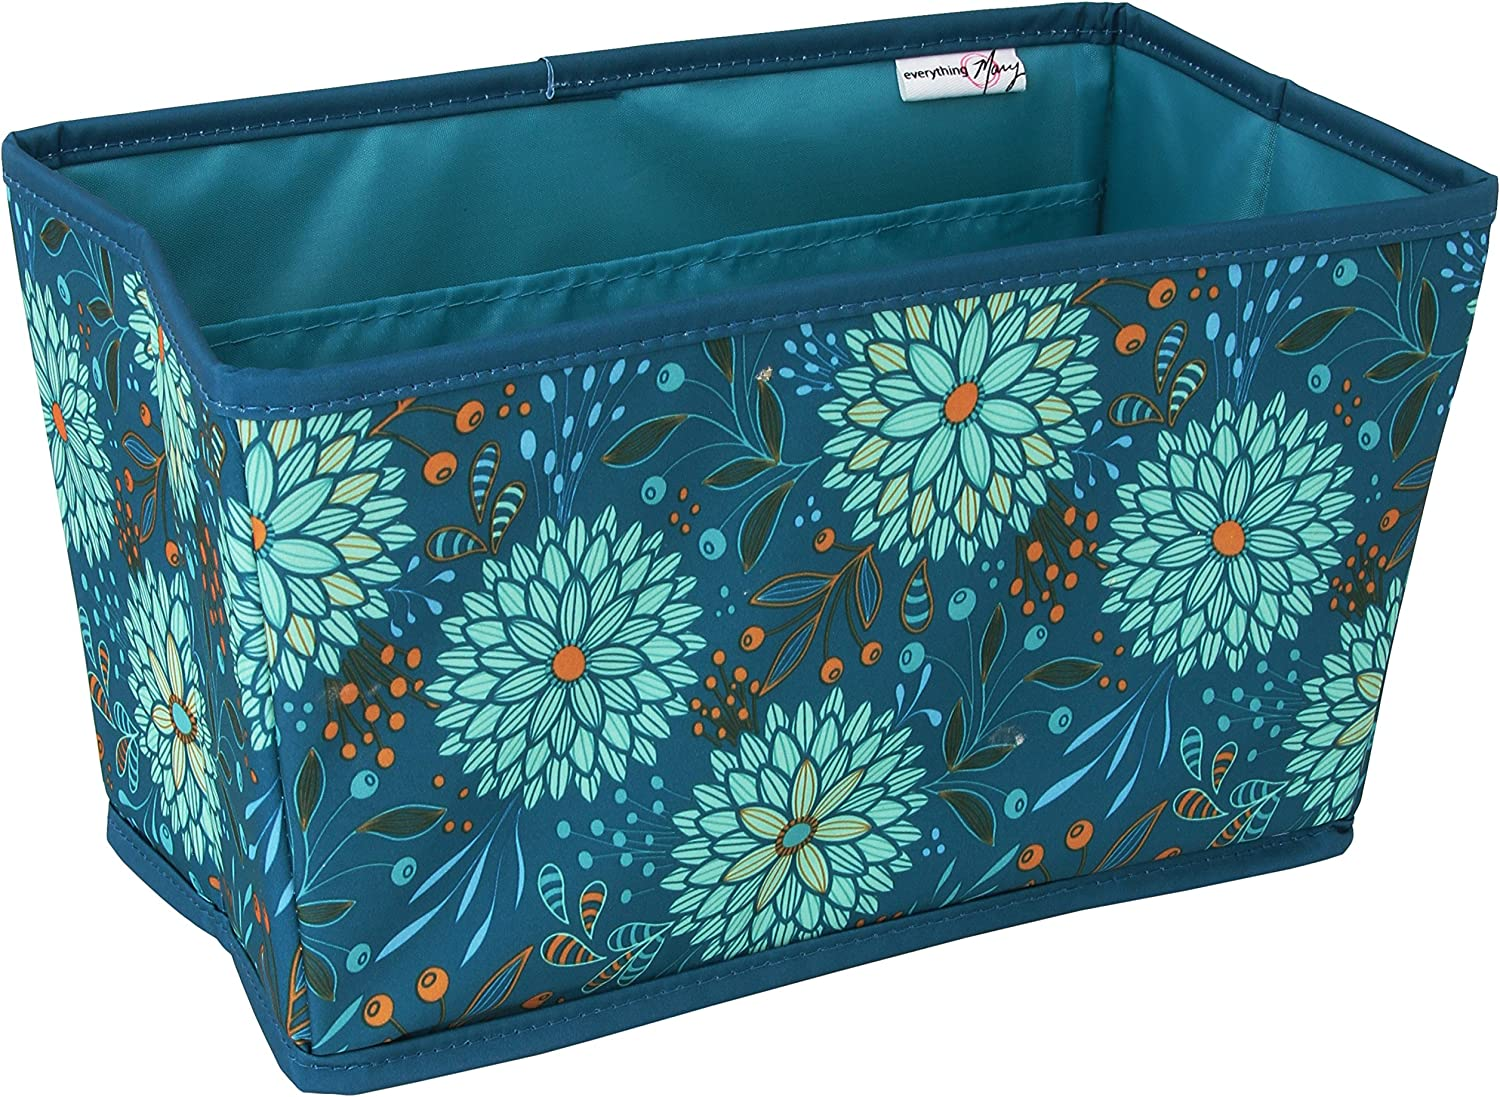 Floral Everything Mary Deluxe Yarn Carry Project Caddy Organizer Storage Tote